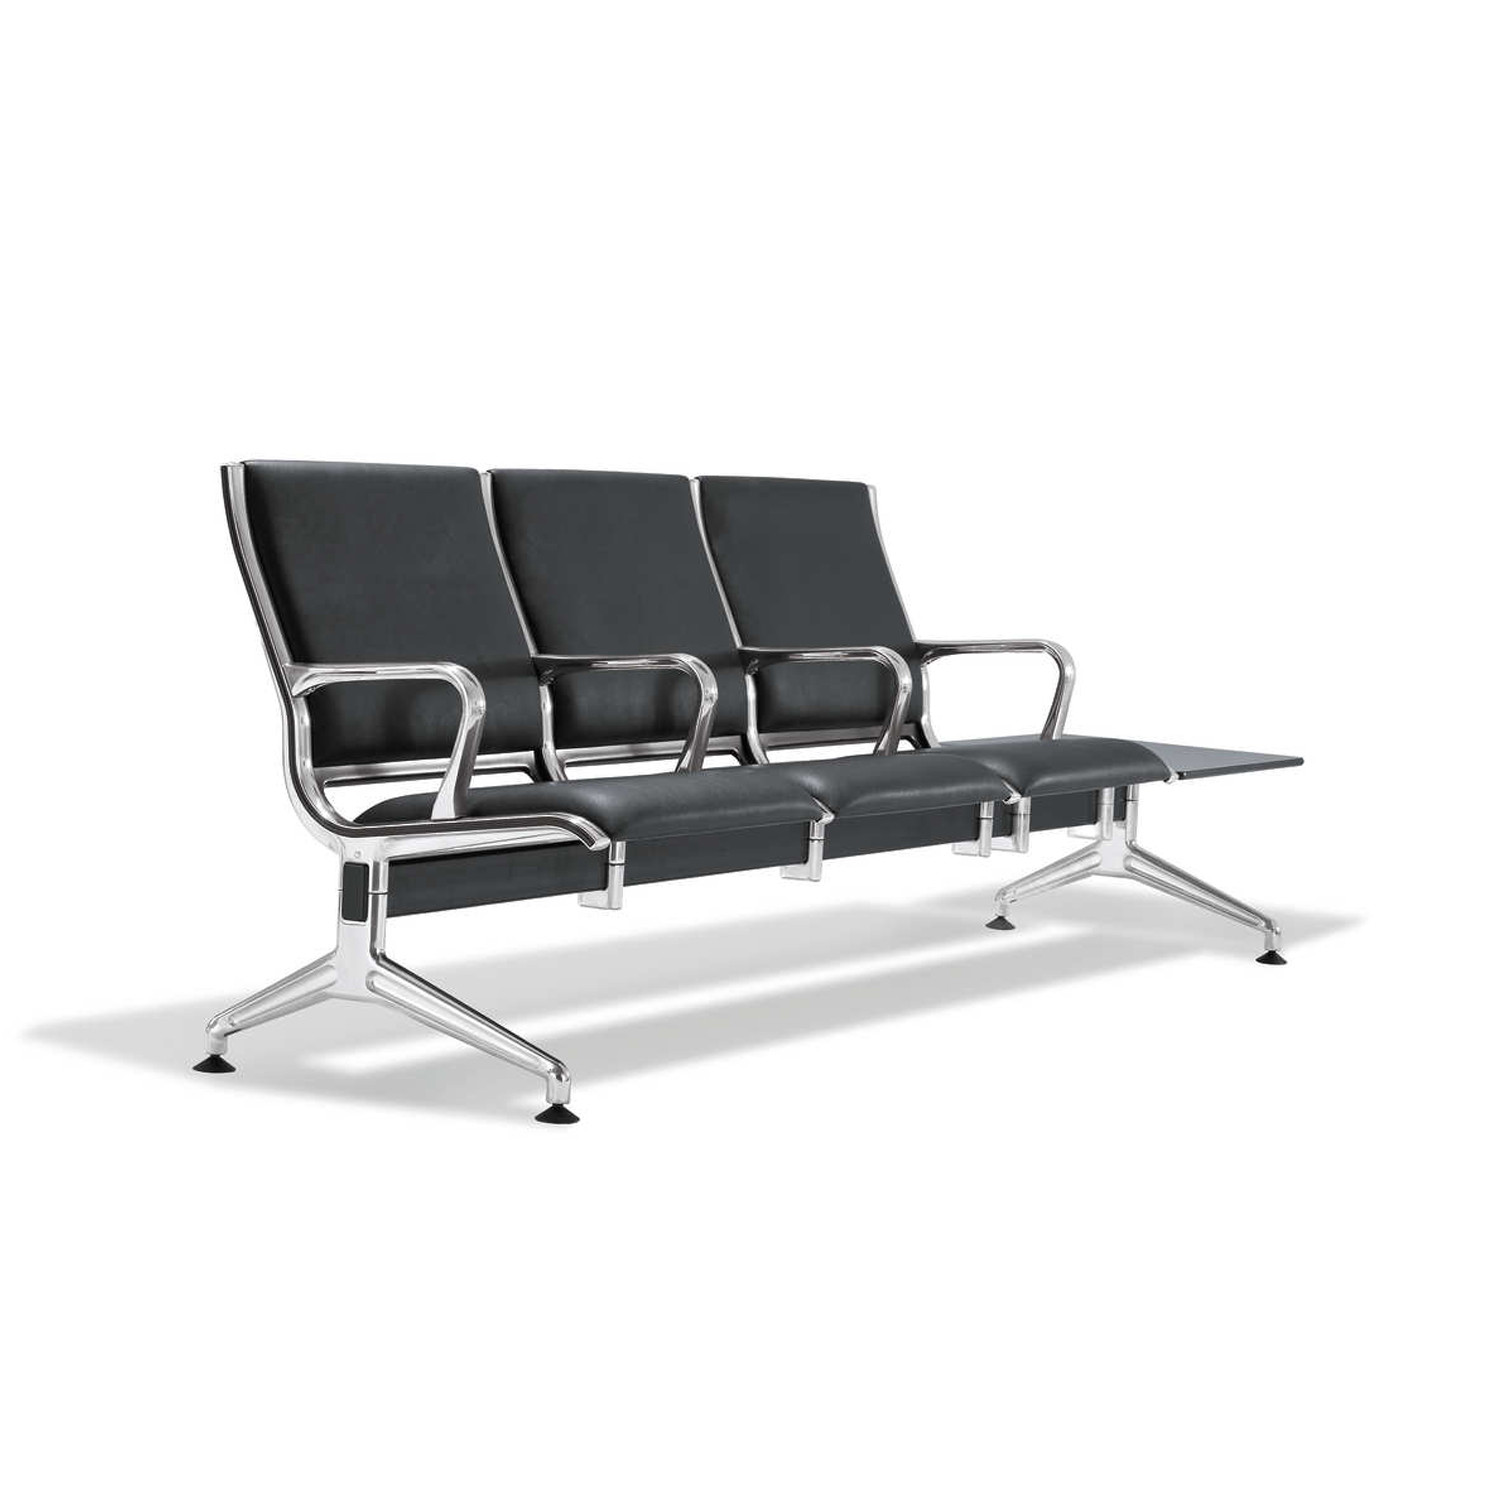 7050 Airport Seating with armrests